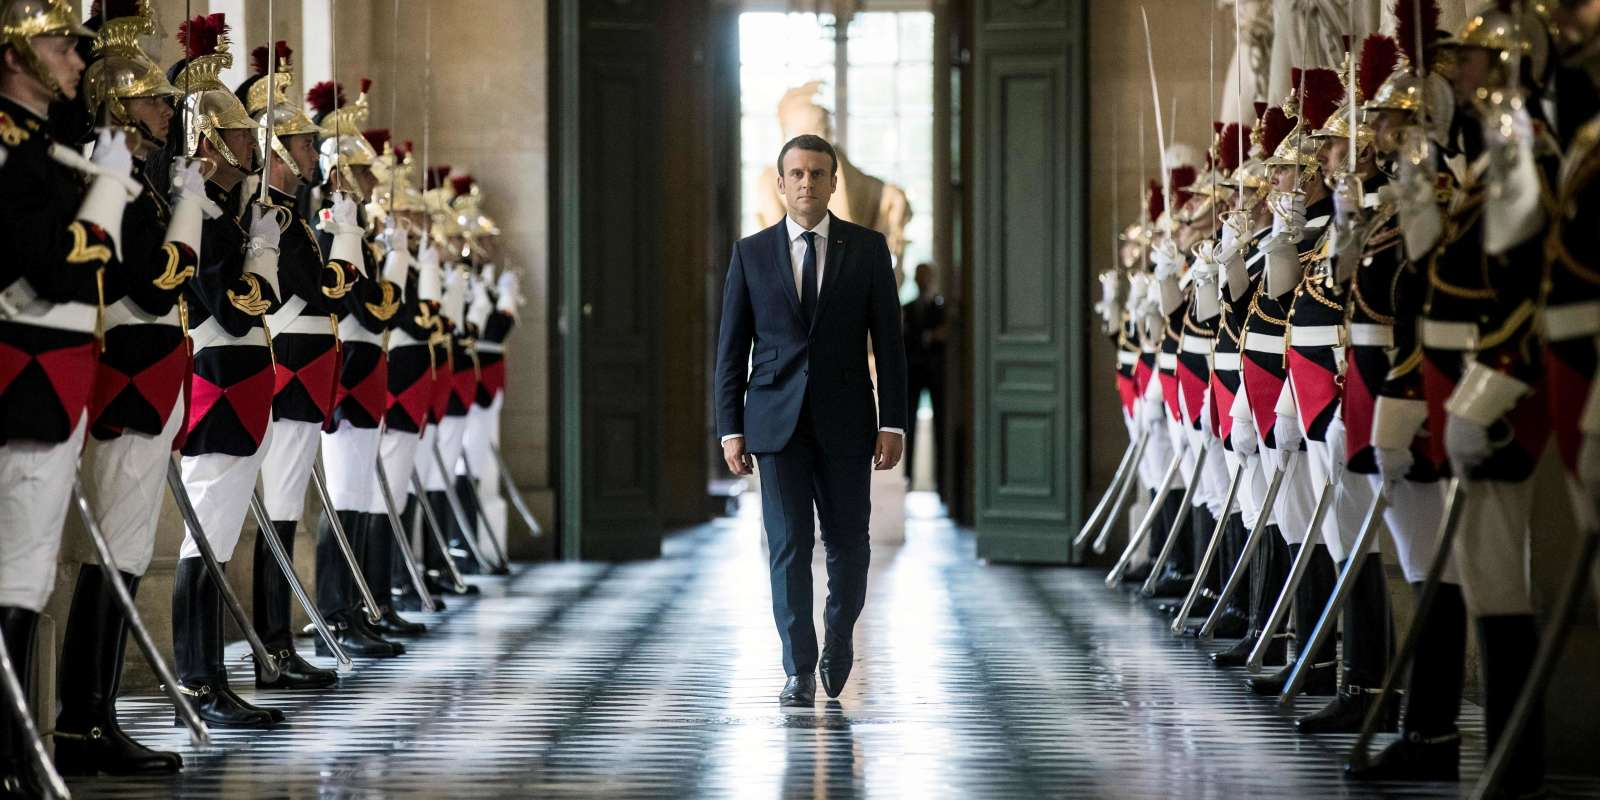 (FILES) In this file photo taken on July 3, 2017 French President Emmanuel Macron walks through the Galerie des Bustes (Busts Gallery) to access the Versailles Palace's hemicycle for a special congress gathering both houses of parliament (National Assembly and Senate) in the palace of Versailles, outside Paris. A year after his march to power, French President Emmanuel Macron's reformist zeal has endeared him to part of the electorate but polls show him as still unloved by most of the country. Macron suffered a sharp drop in popularity when he began to push through changes to labour law last September that make hiring and firing easier. / AFP / POOL / Etienne LAURENT